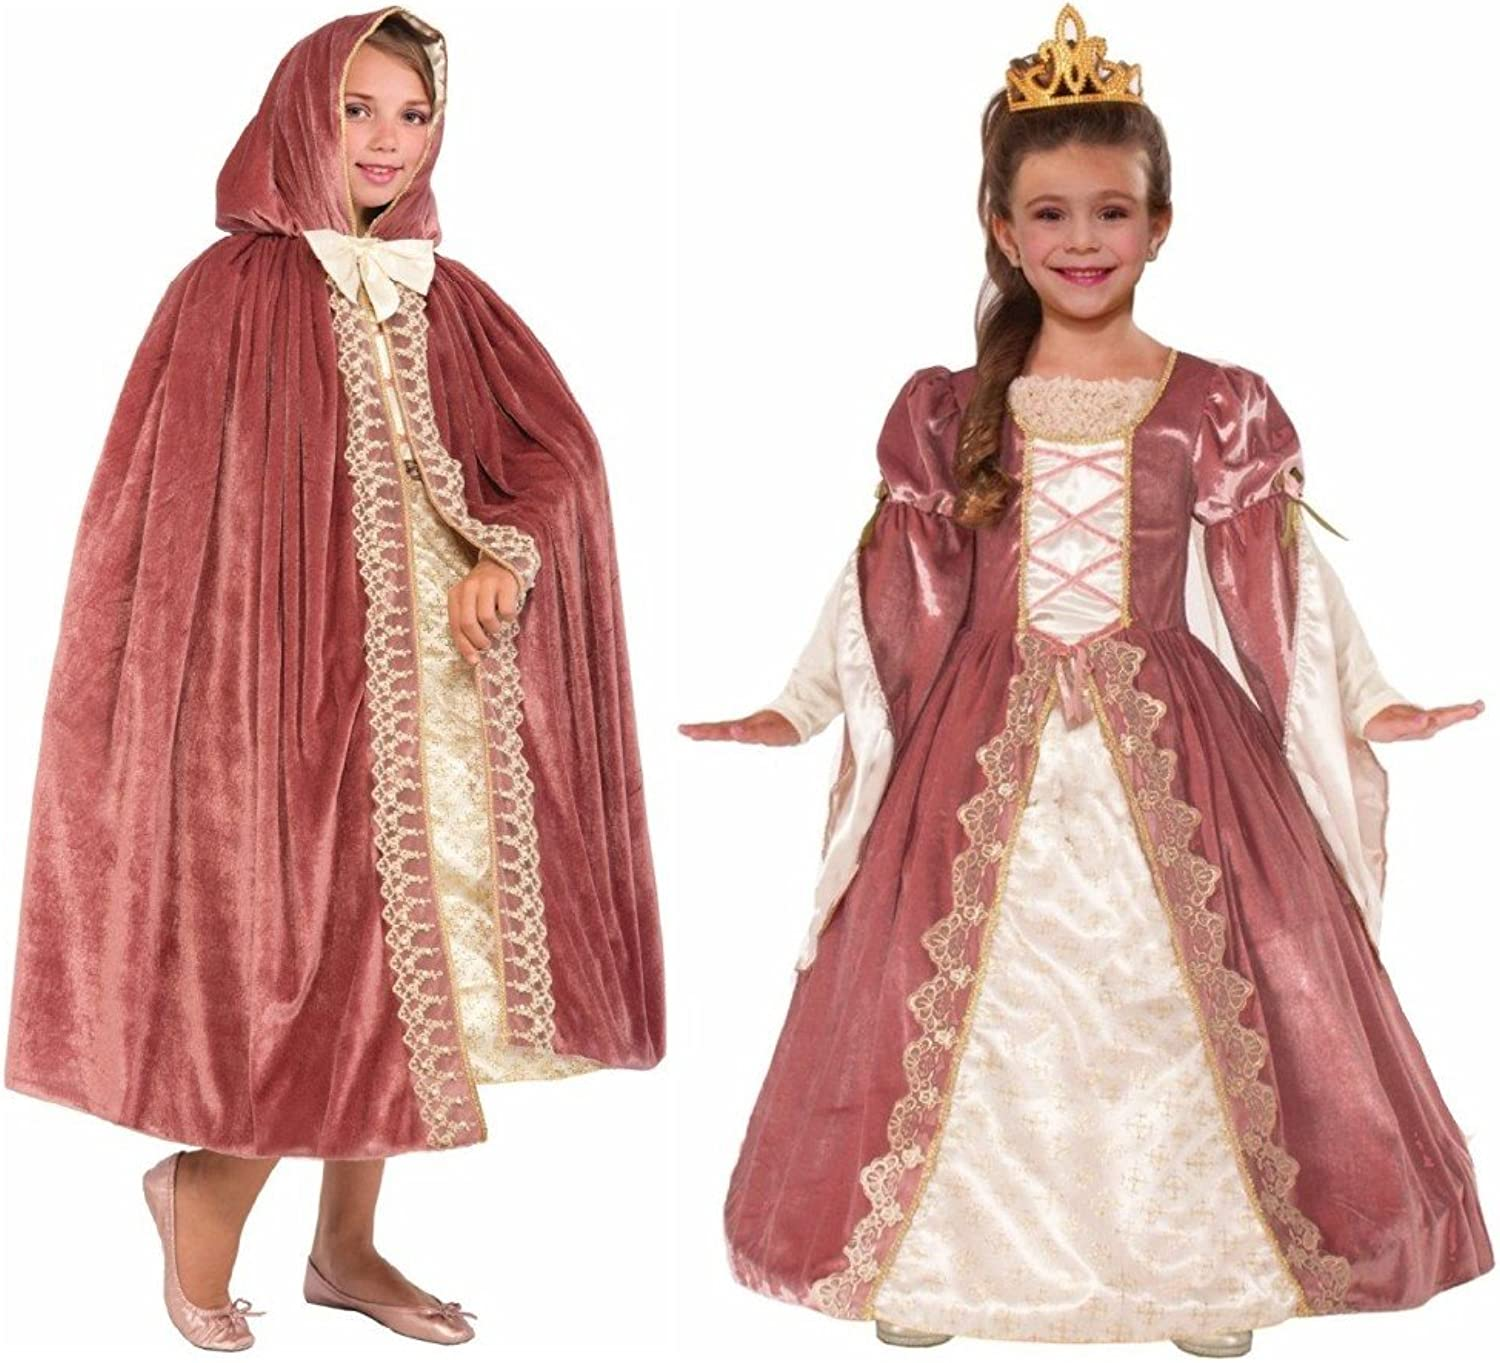 Big Girls' Victorian pink Princess Costume and Hooded Cape Set